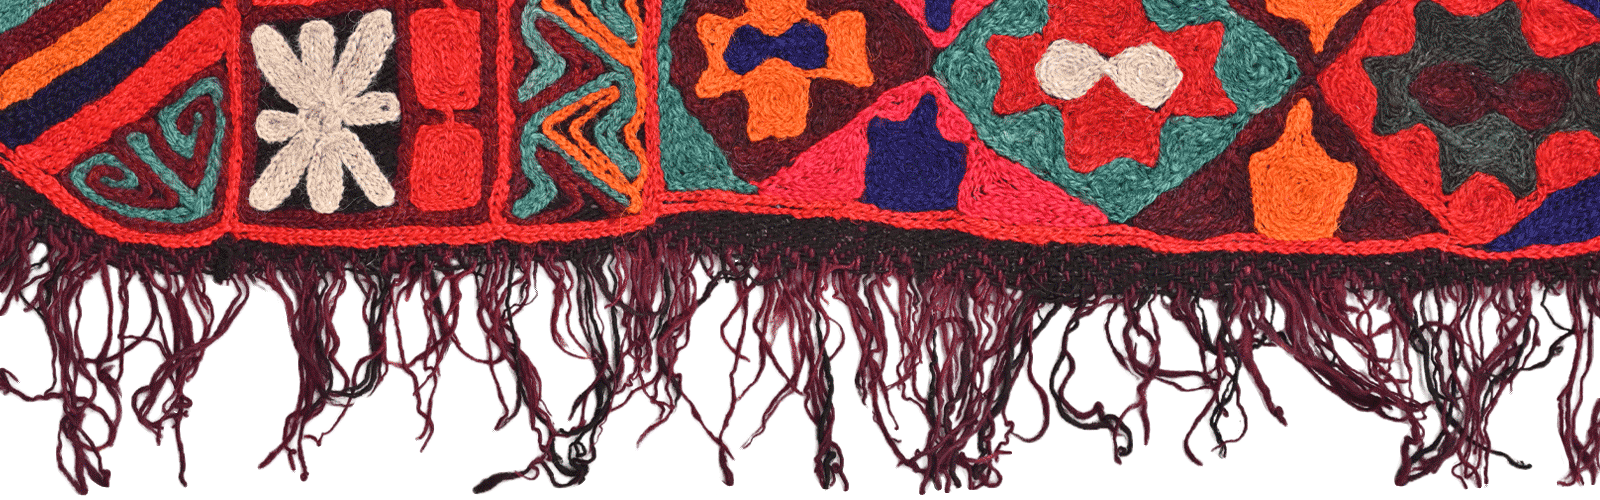 textile with tassles hanging down